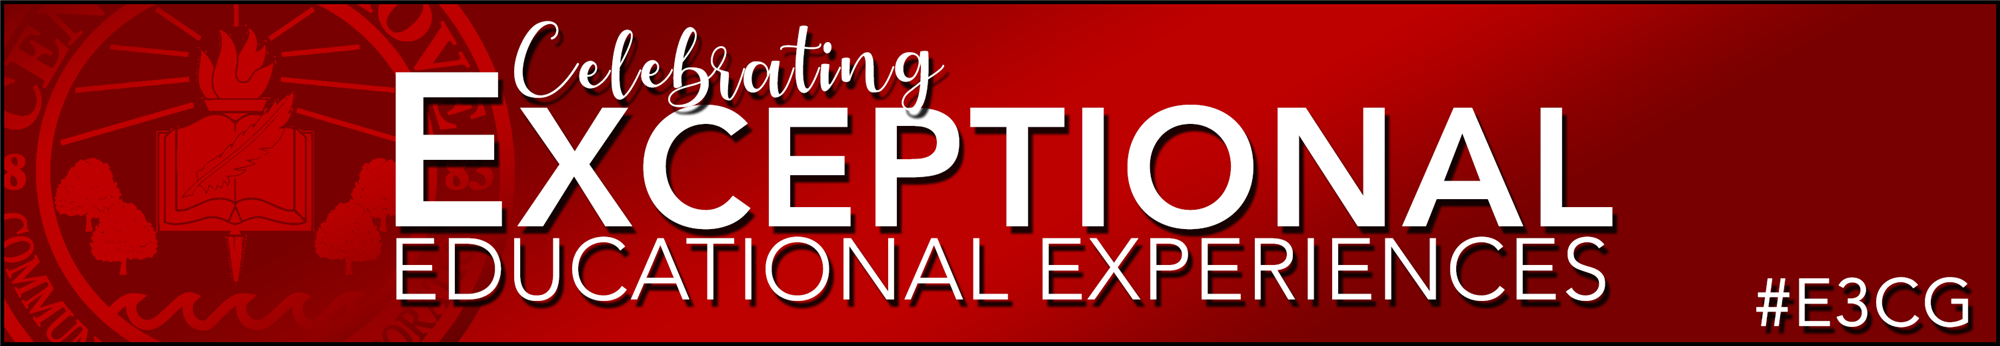 Celebrating Exceptional Educational Experiences